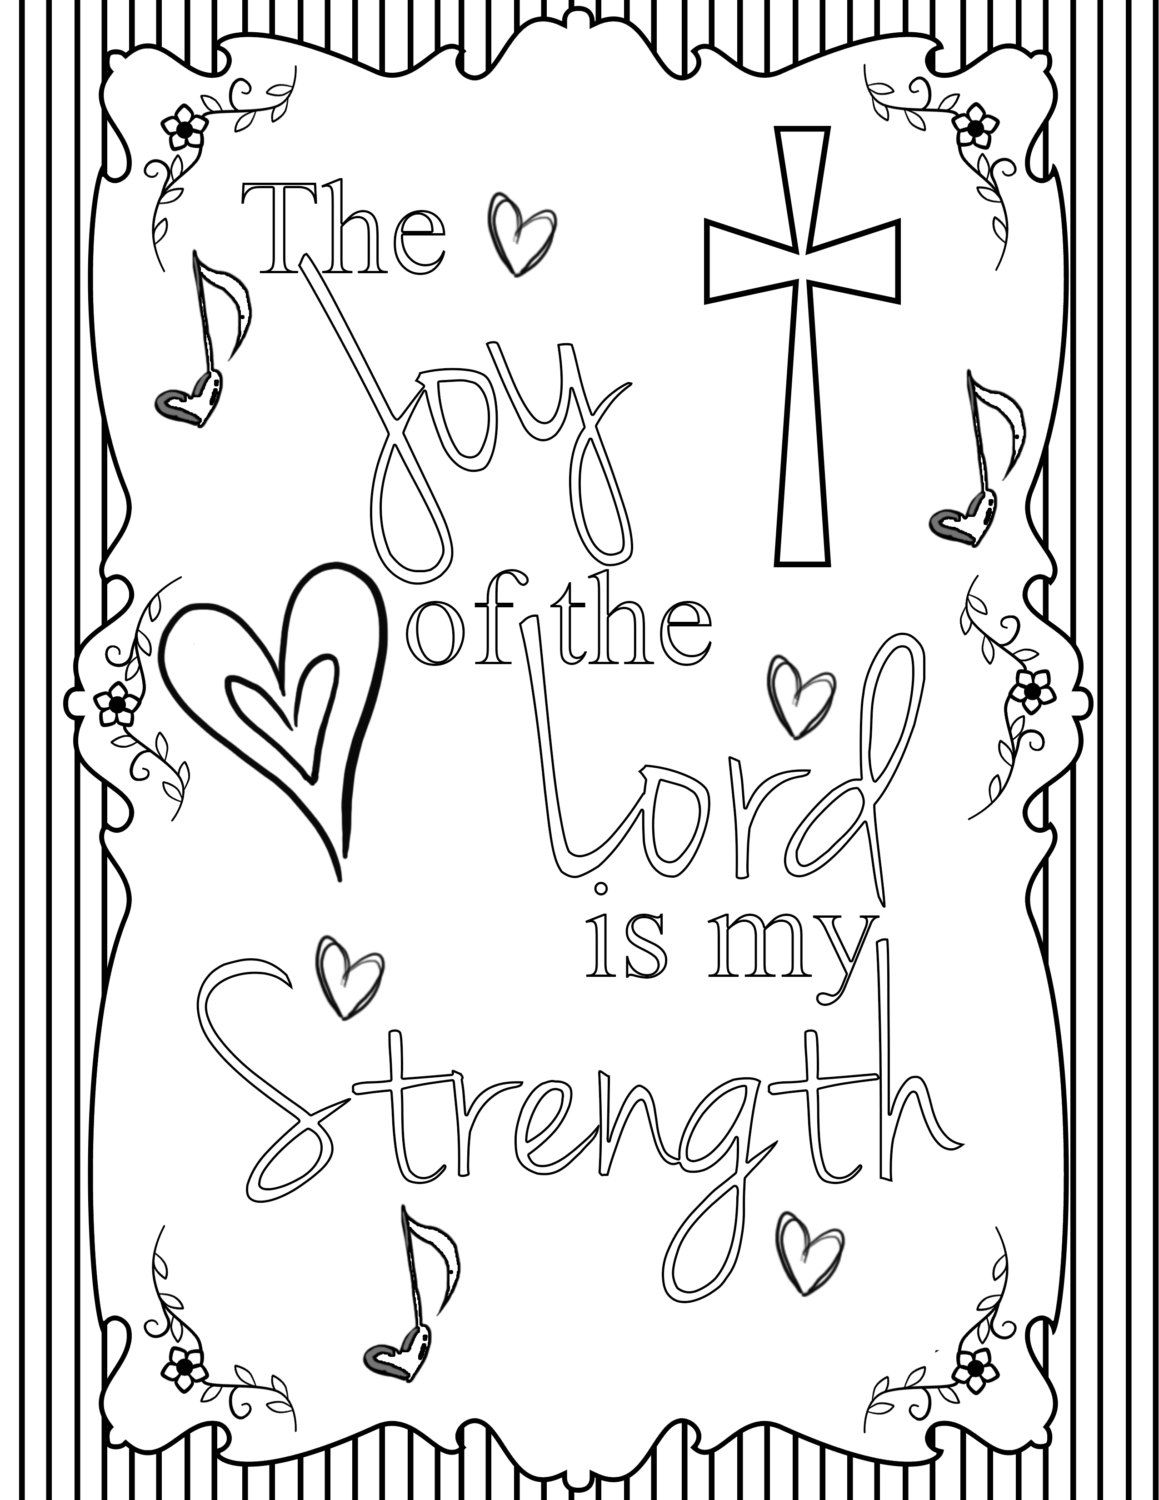 Joy of the Lord Adult Coloring Page by FIDbyCourtney on